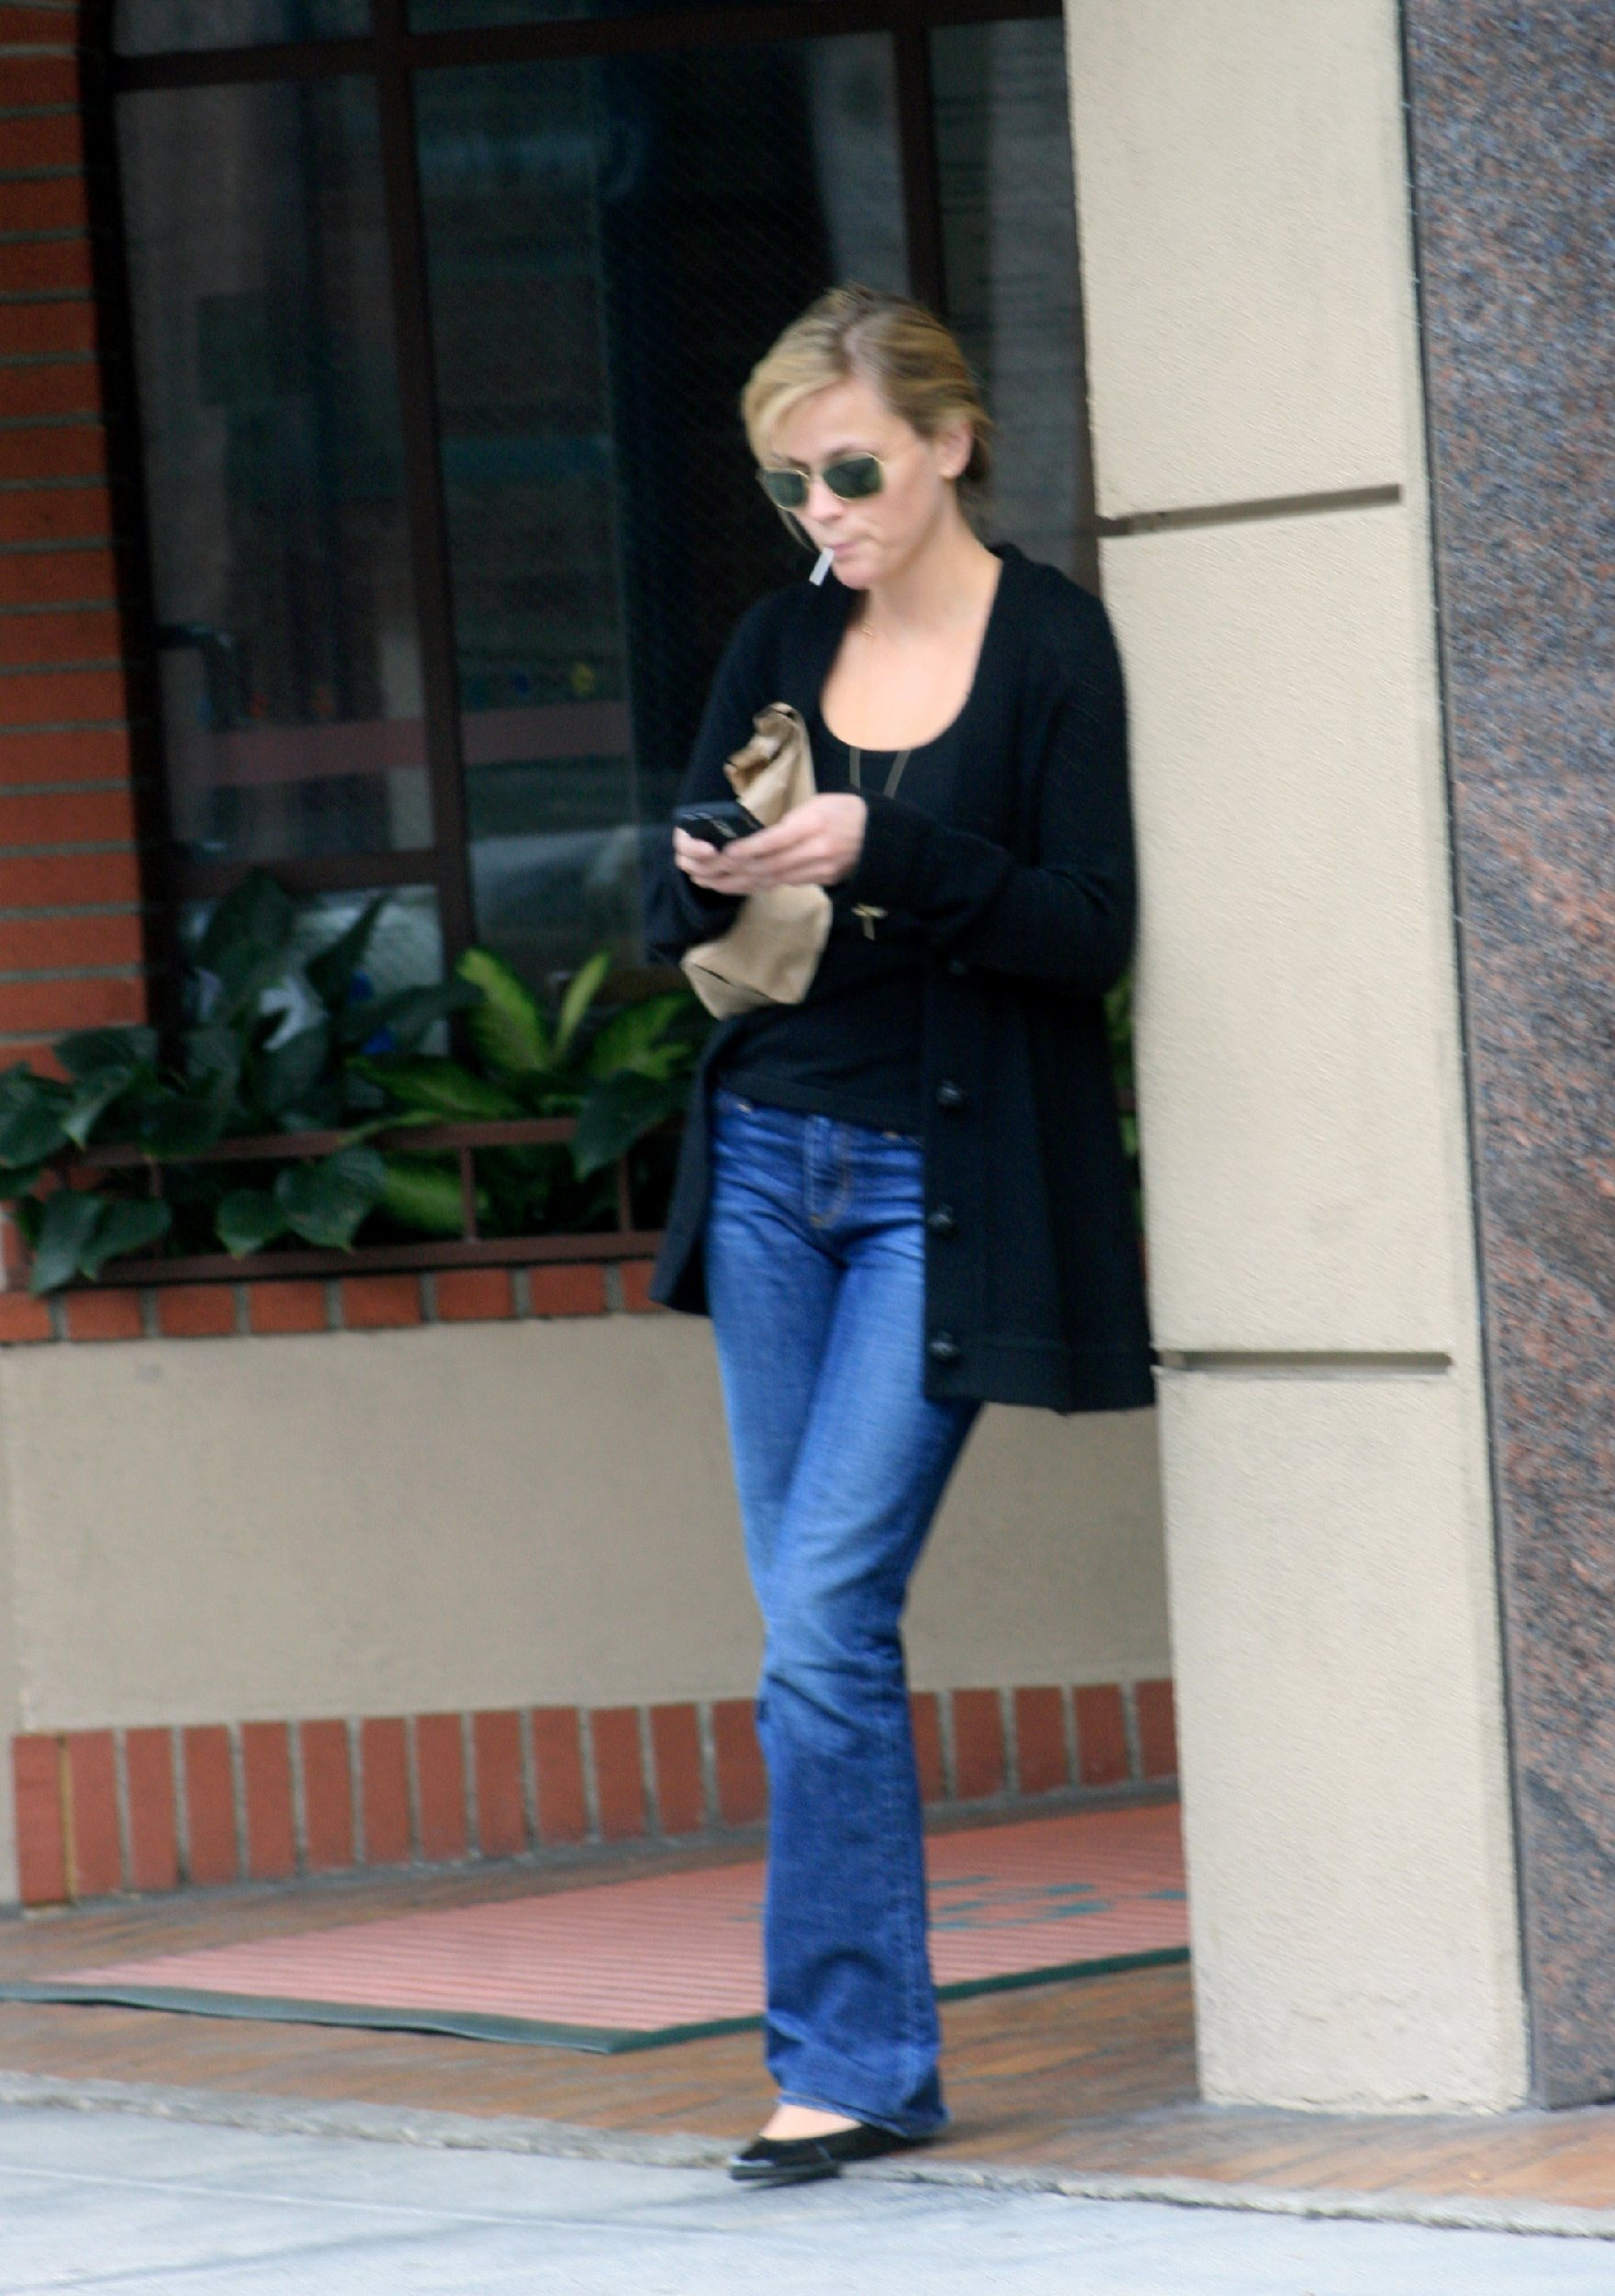 59130_celeb-city.eu_Reese_Witherspoon_leaves_a_medical_building_07_122_583lo.jpg